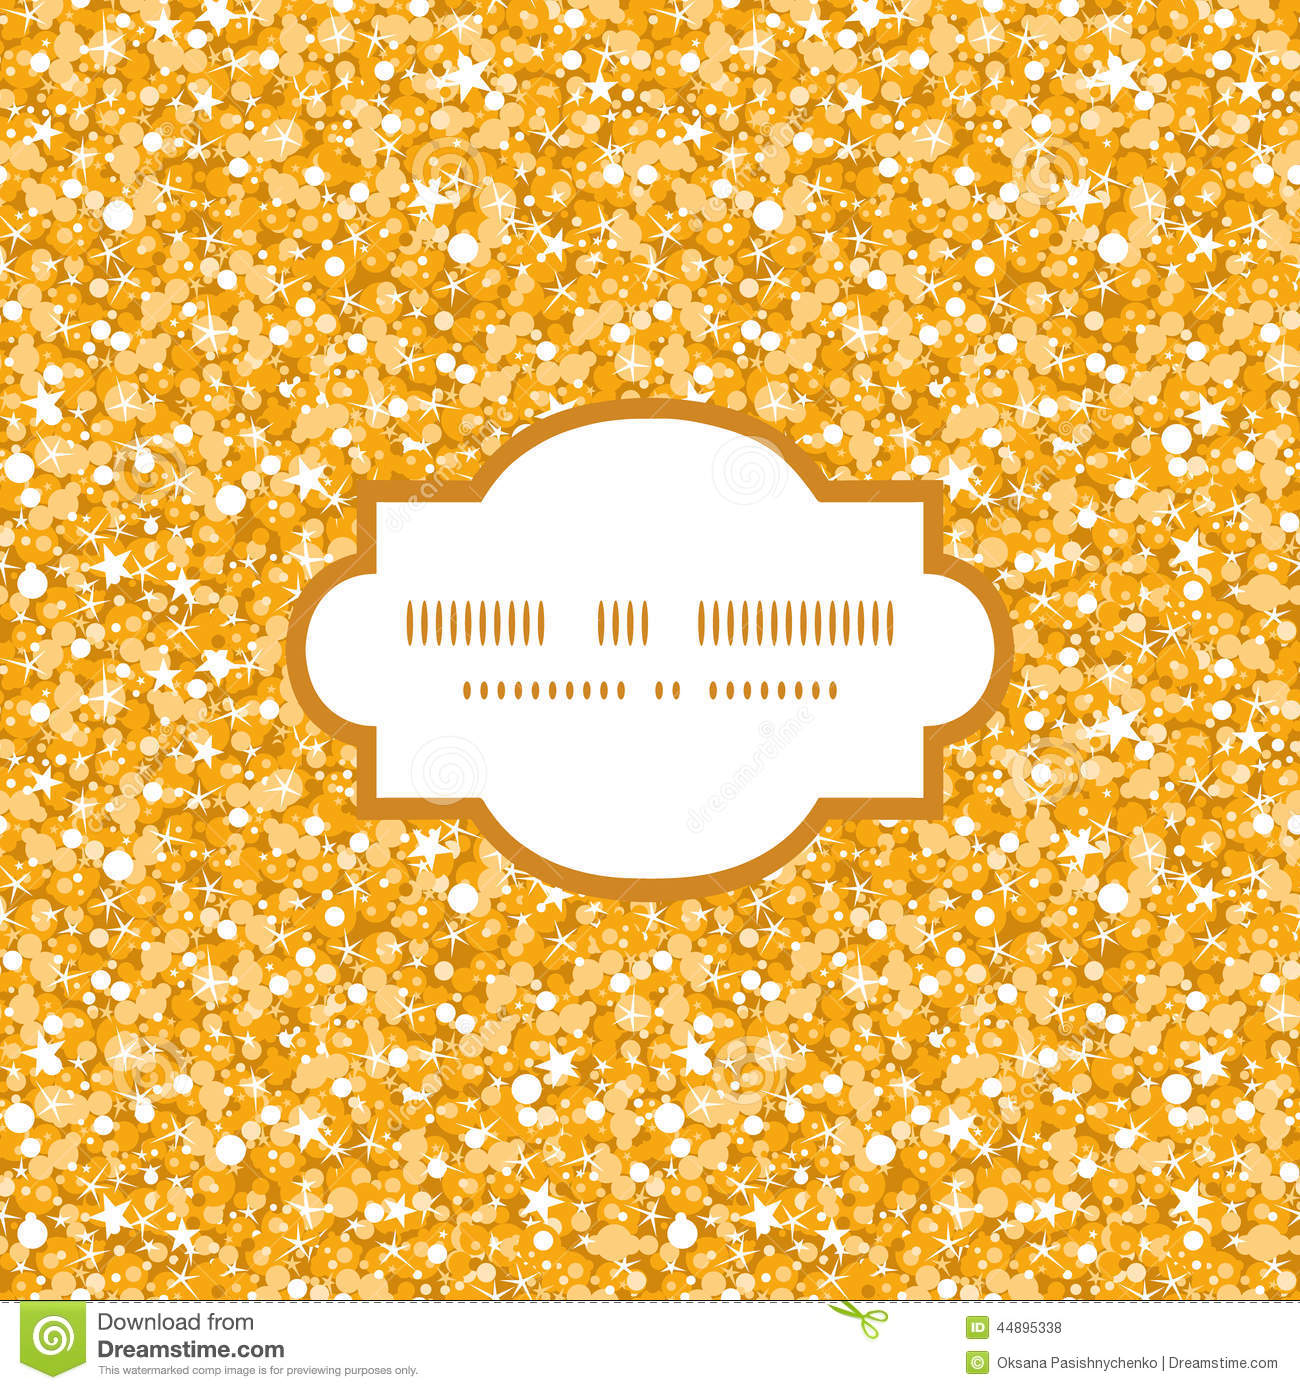 Vector Golden Shiny Glitter Texture Frame Seamless Stock Photo ...